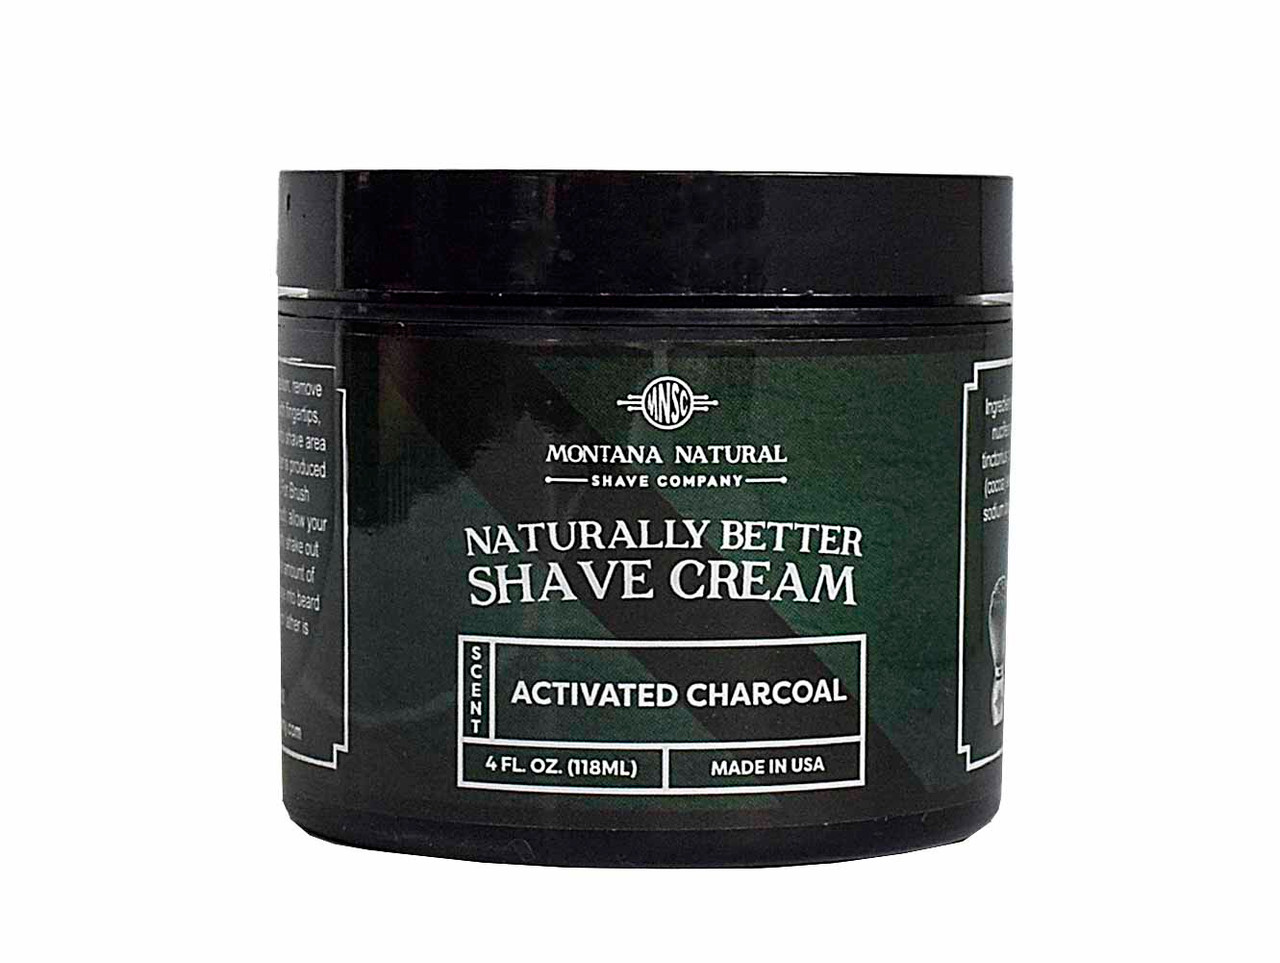 Activated Charcoal Shave Cream for a Naturally Better Shave Experience!